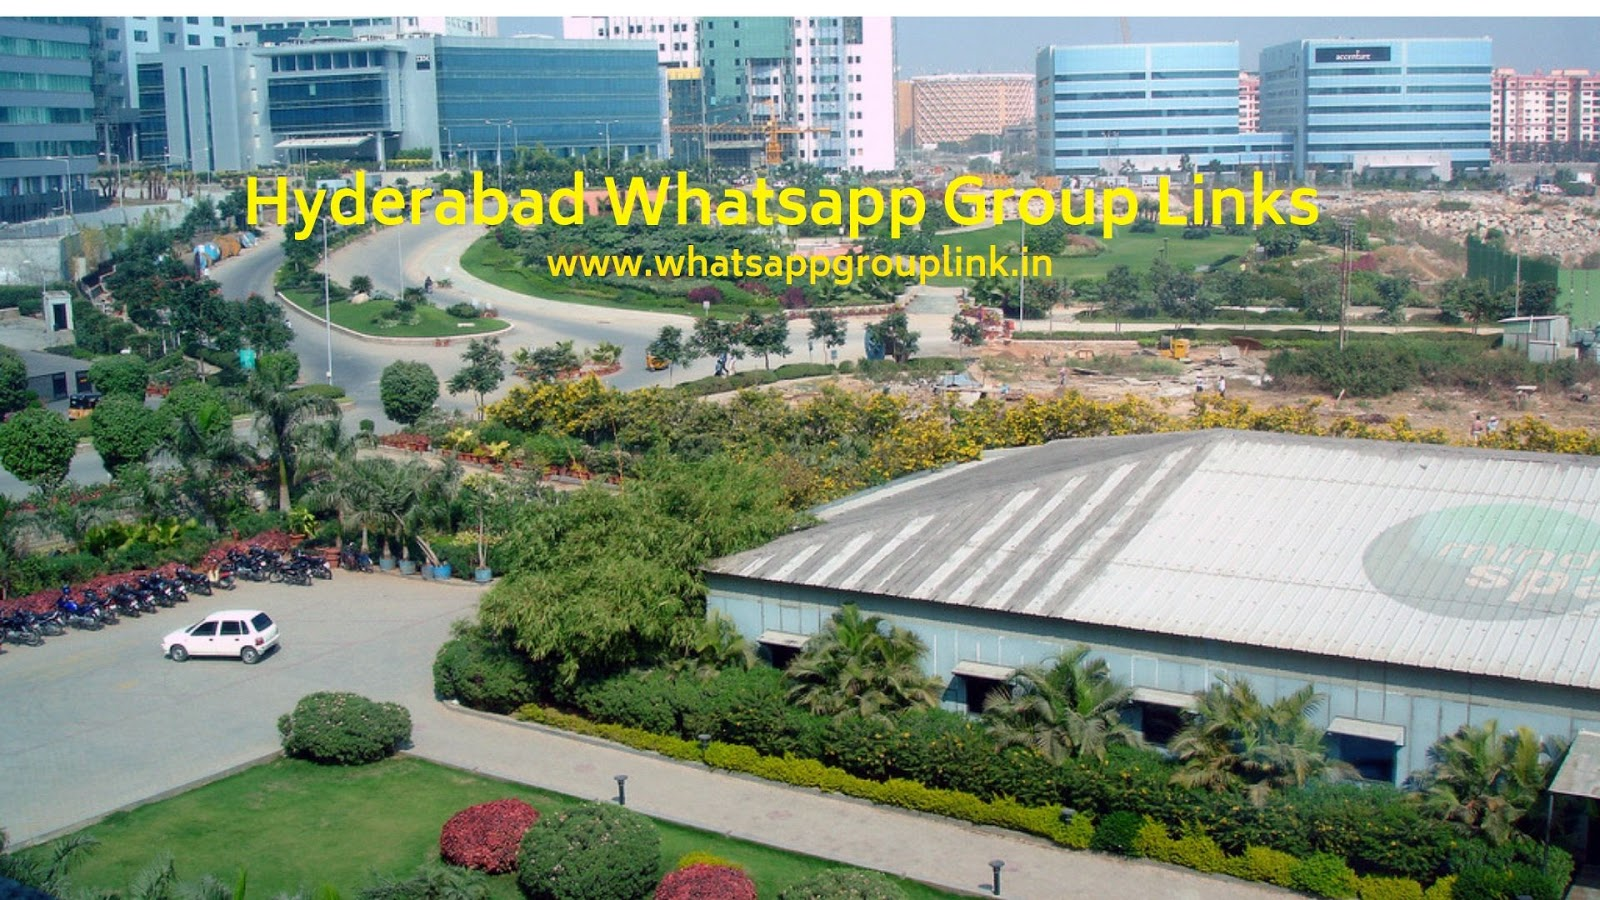 Whatsapp Group Link: Hyderabad Whatsapp Group Links